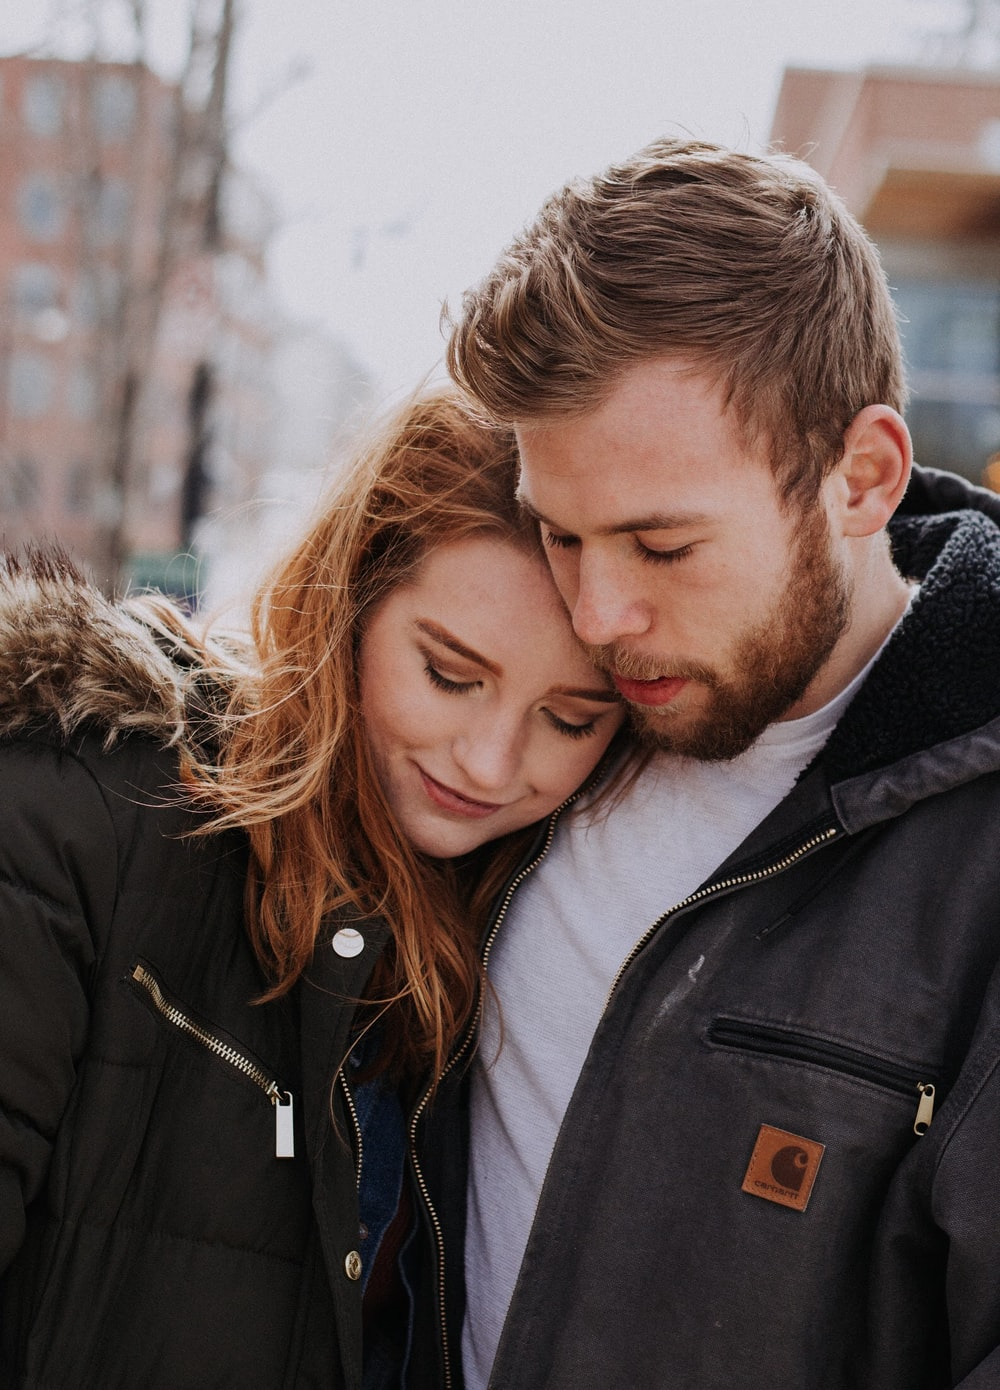 Image result for images of man and women couple